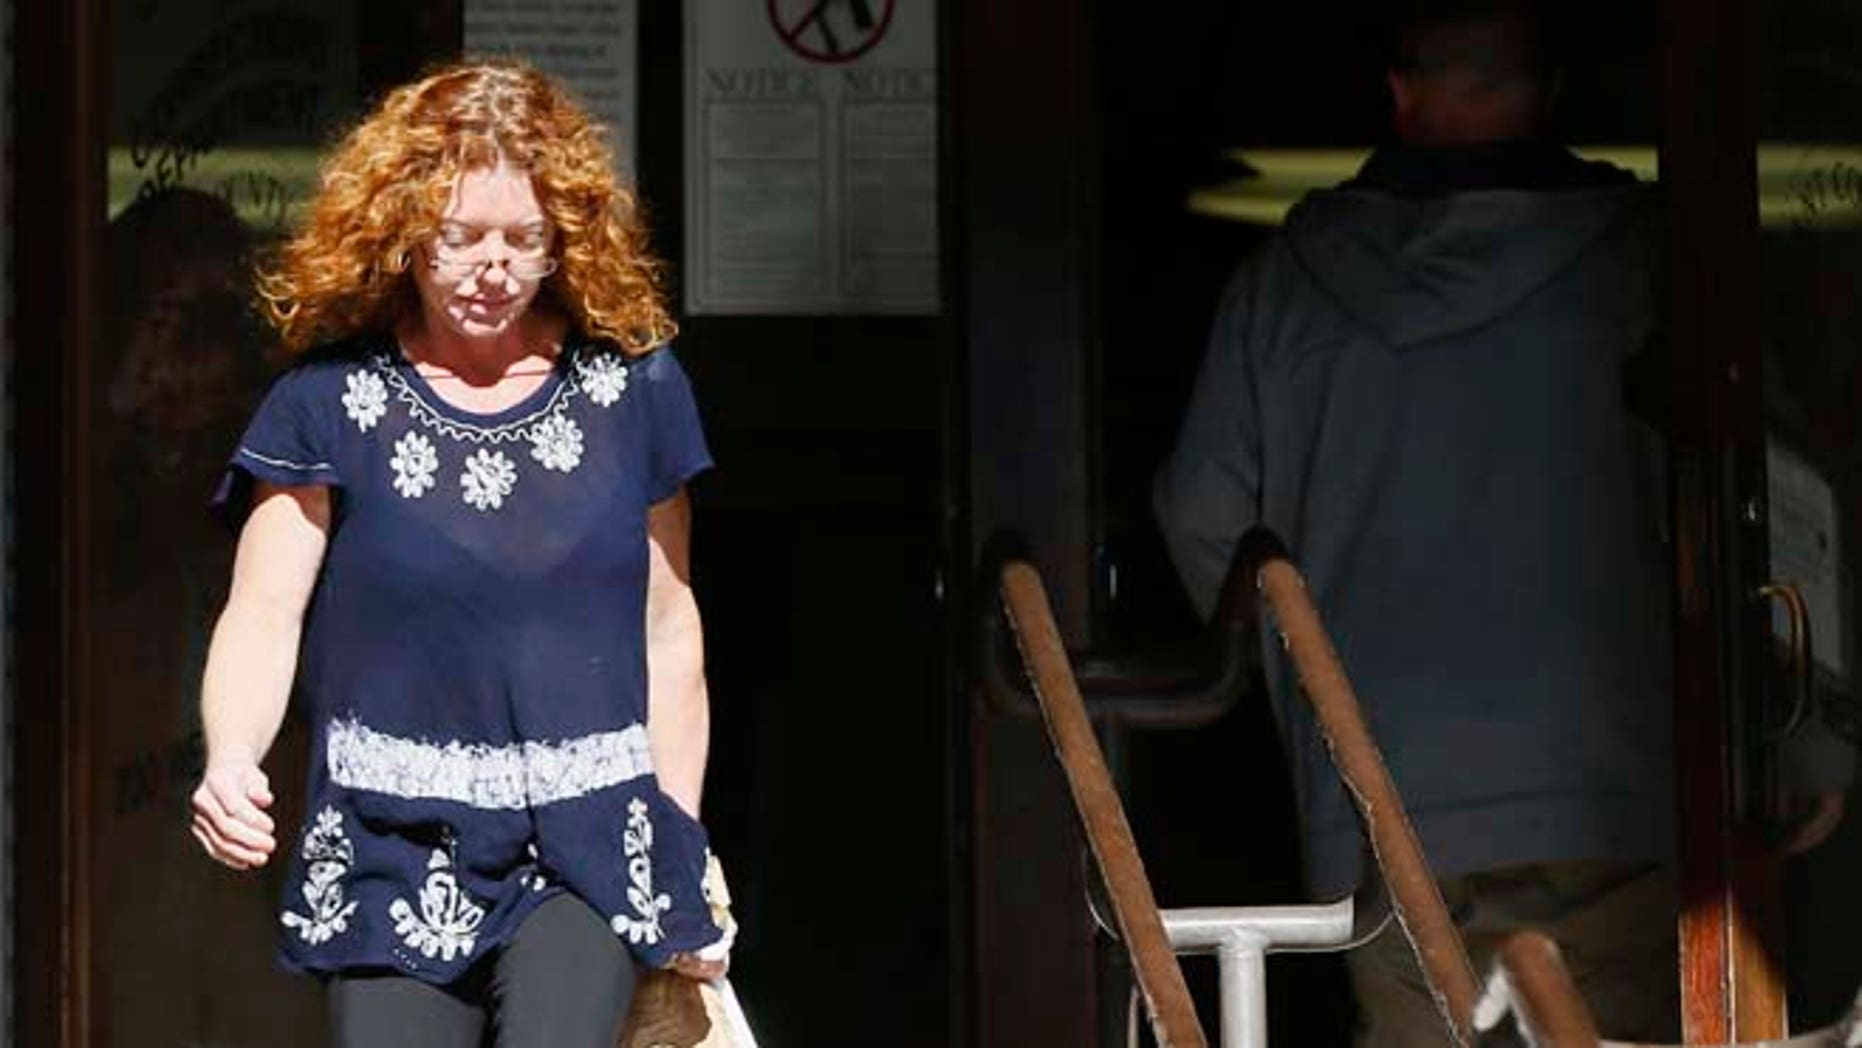 """Wearing a GPS monitor on her left ankle, Tonya Couch, the mother of a Texas teen who used an """"affluenza"""" defense in a drunken wreck, leaves Tarrant County Community Supervision and Corrections Department on Tuesday, Jan. 12, 2016, in Fort Worth, Texas. A judge decreased Couch's bond Monday from $1 million to $75,000. Couch is charged with hindering the apprehension of a felon after she and her son, Ethan Couch, were caught in a Mexican resort city. (AP Photo/Brandon Wade)"""